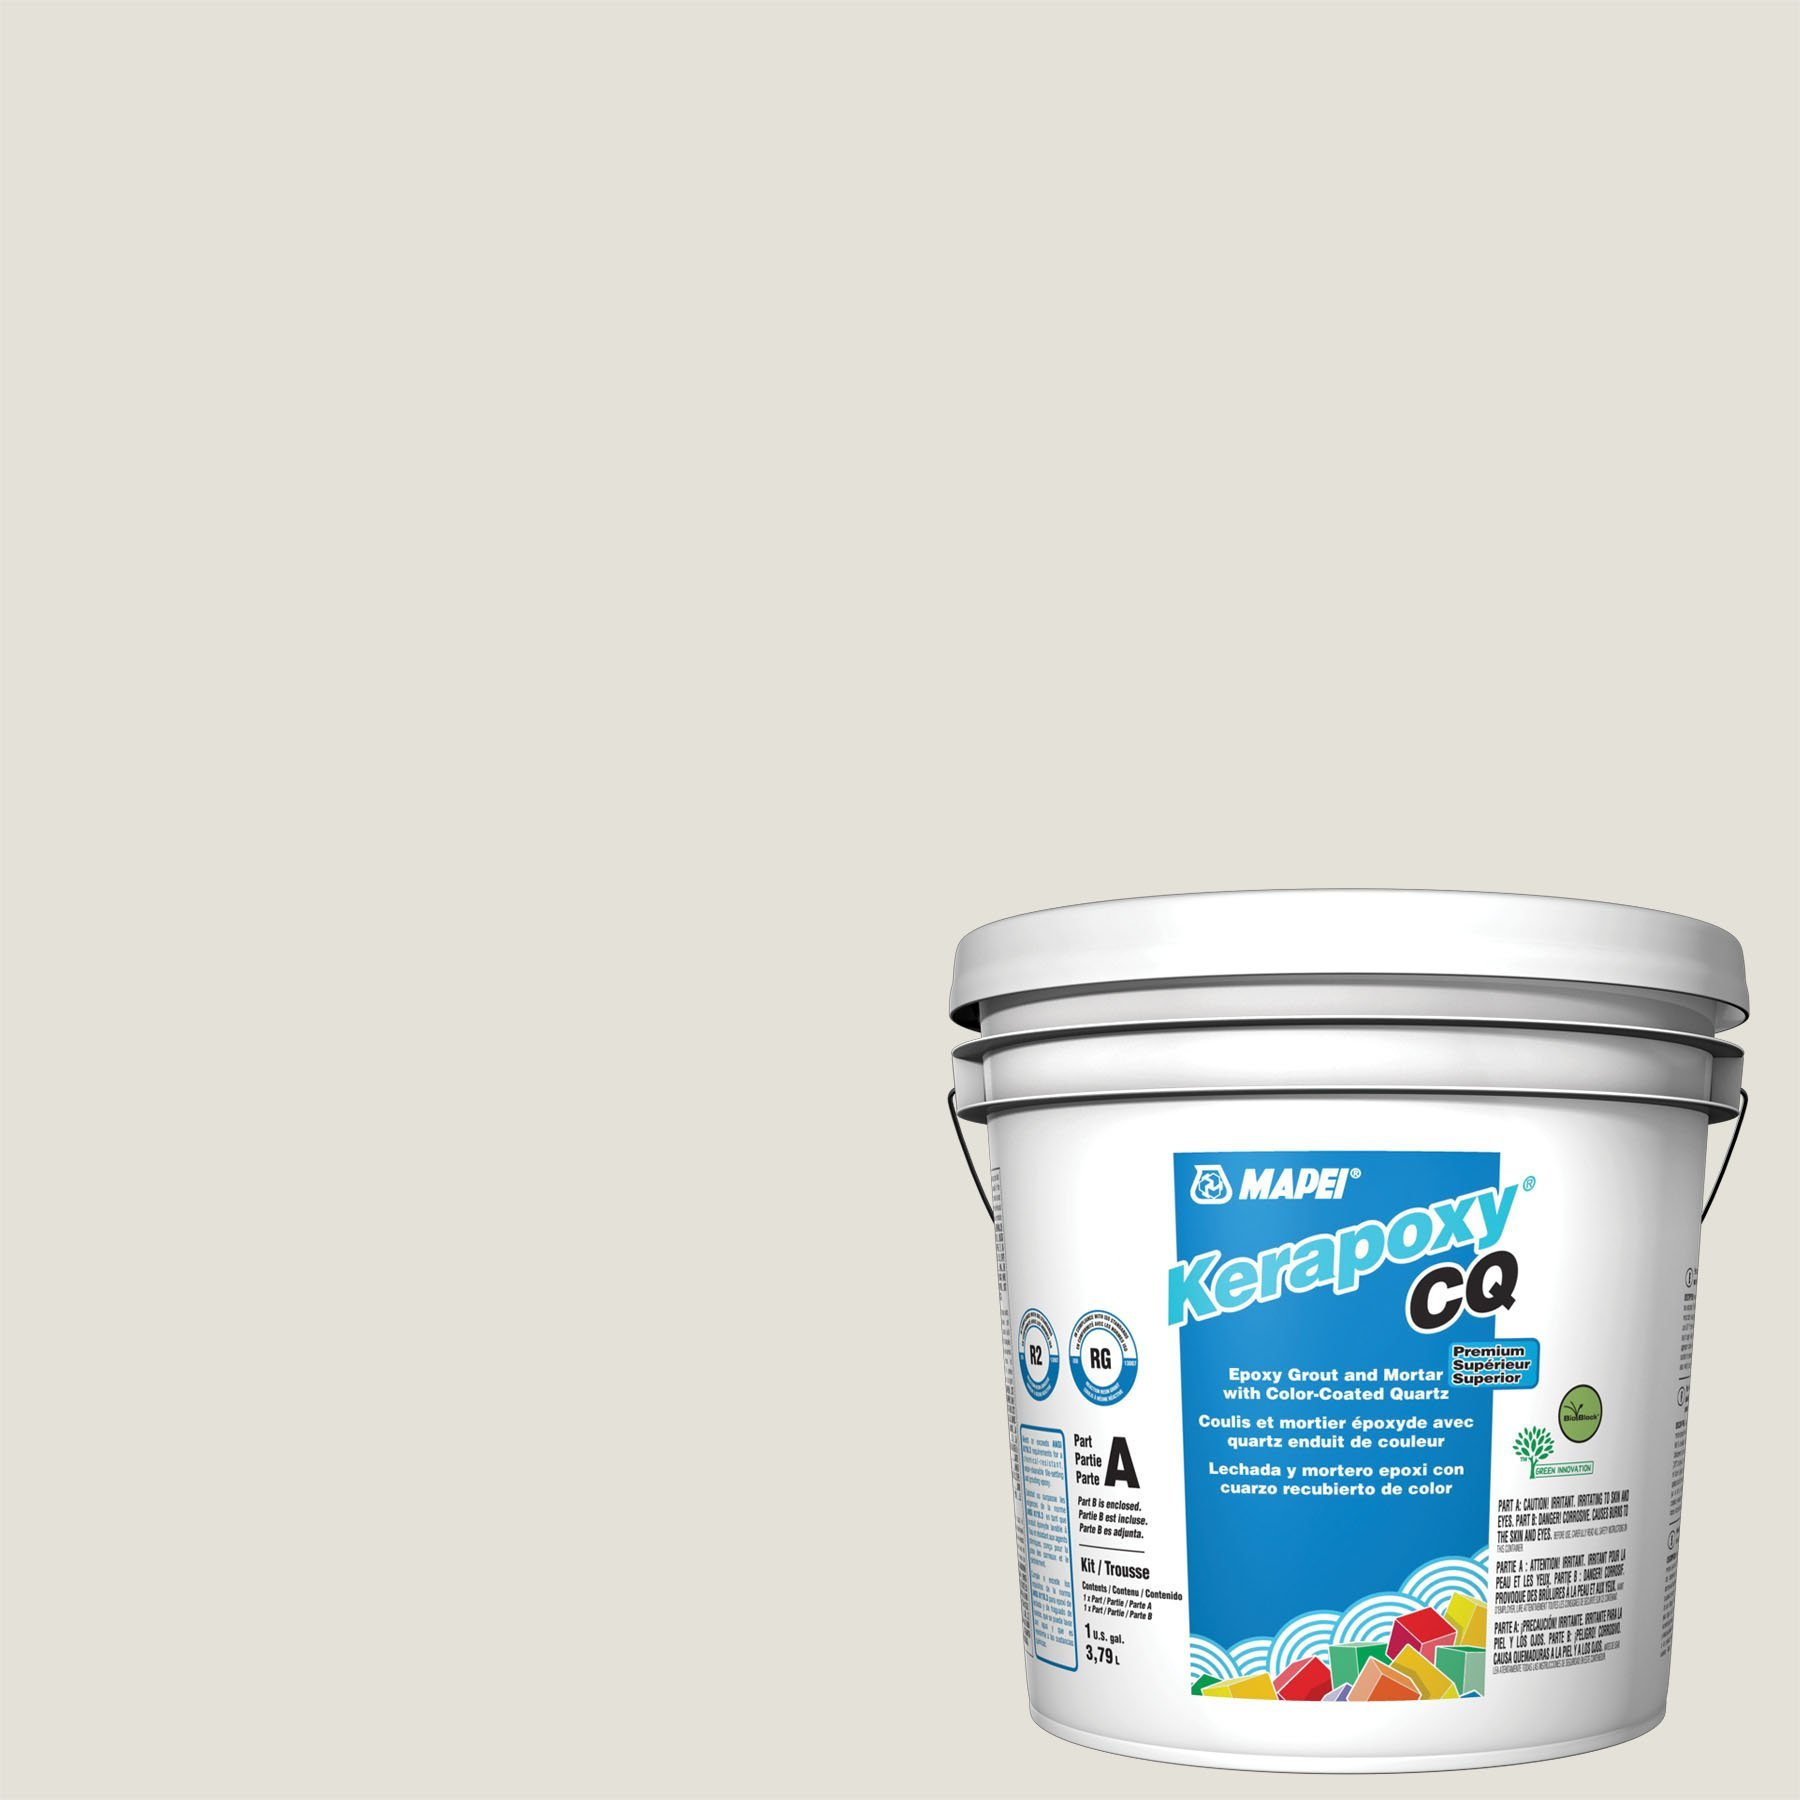 Mapei 00 White Keracolor Unsanded Grout 25lb